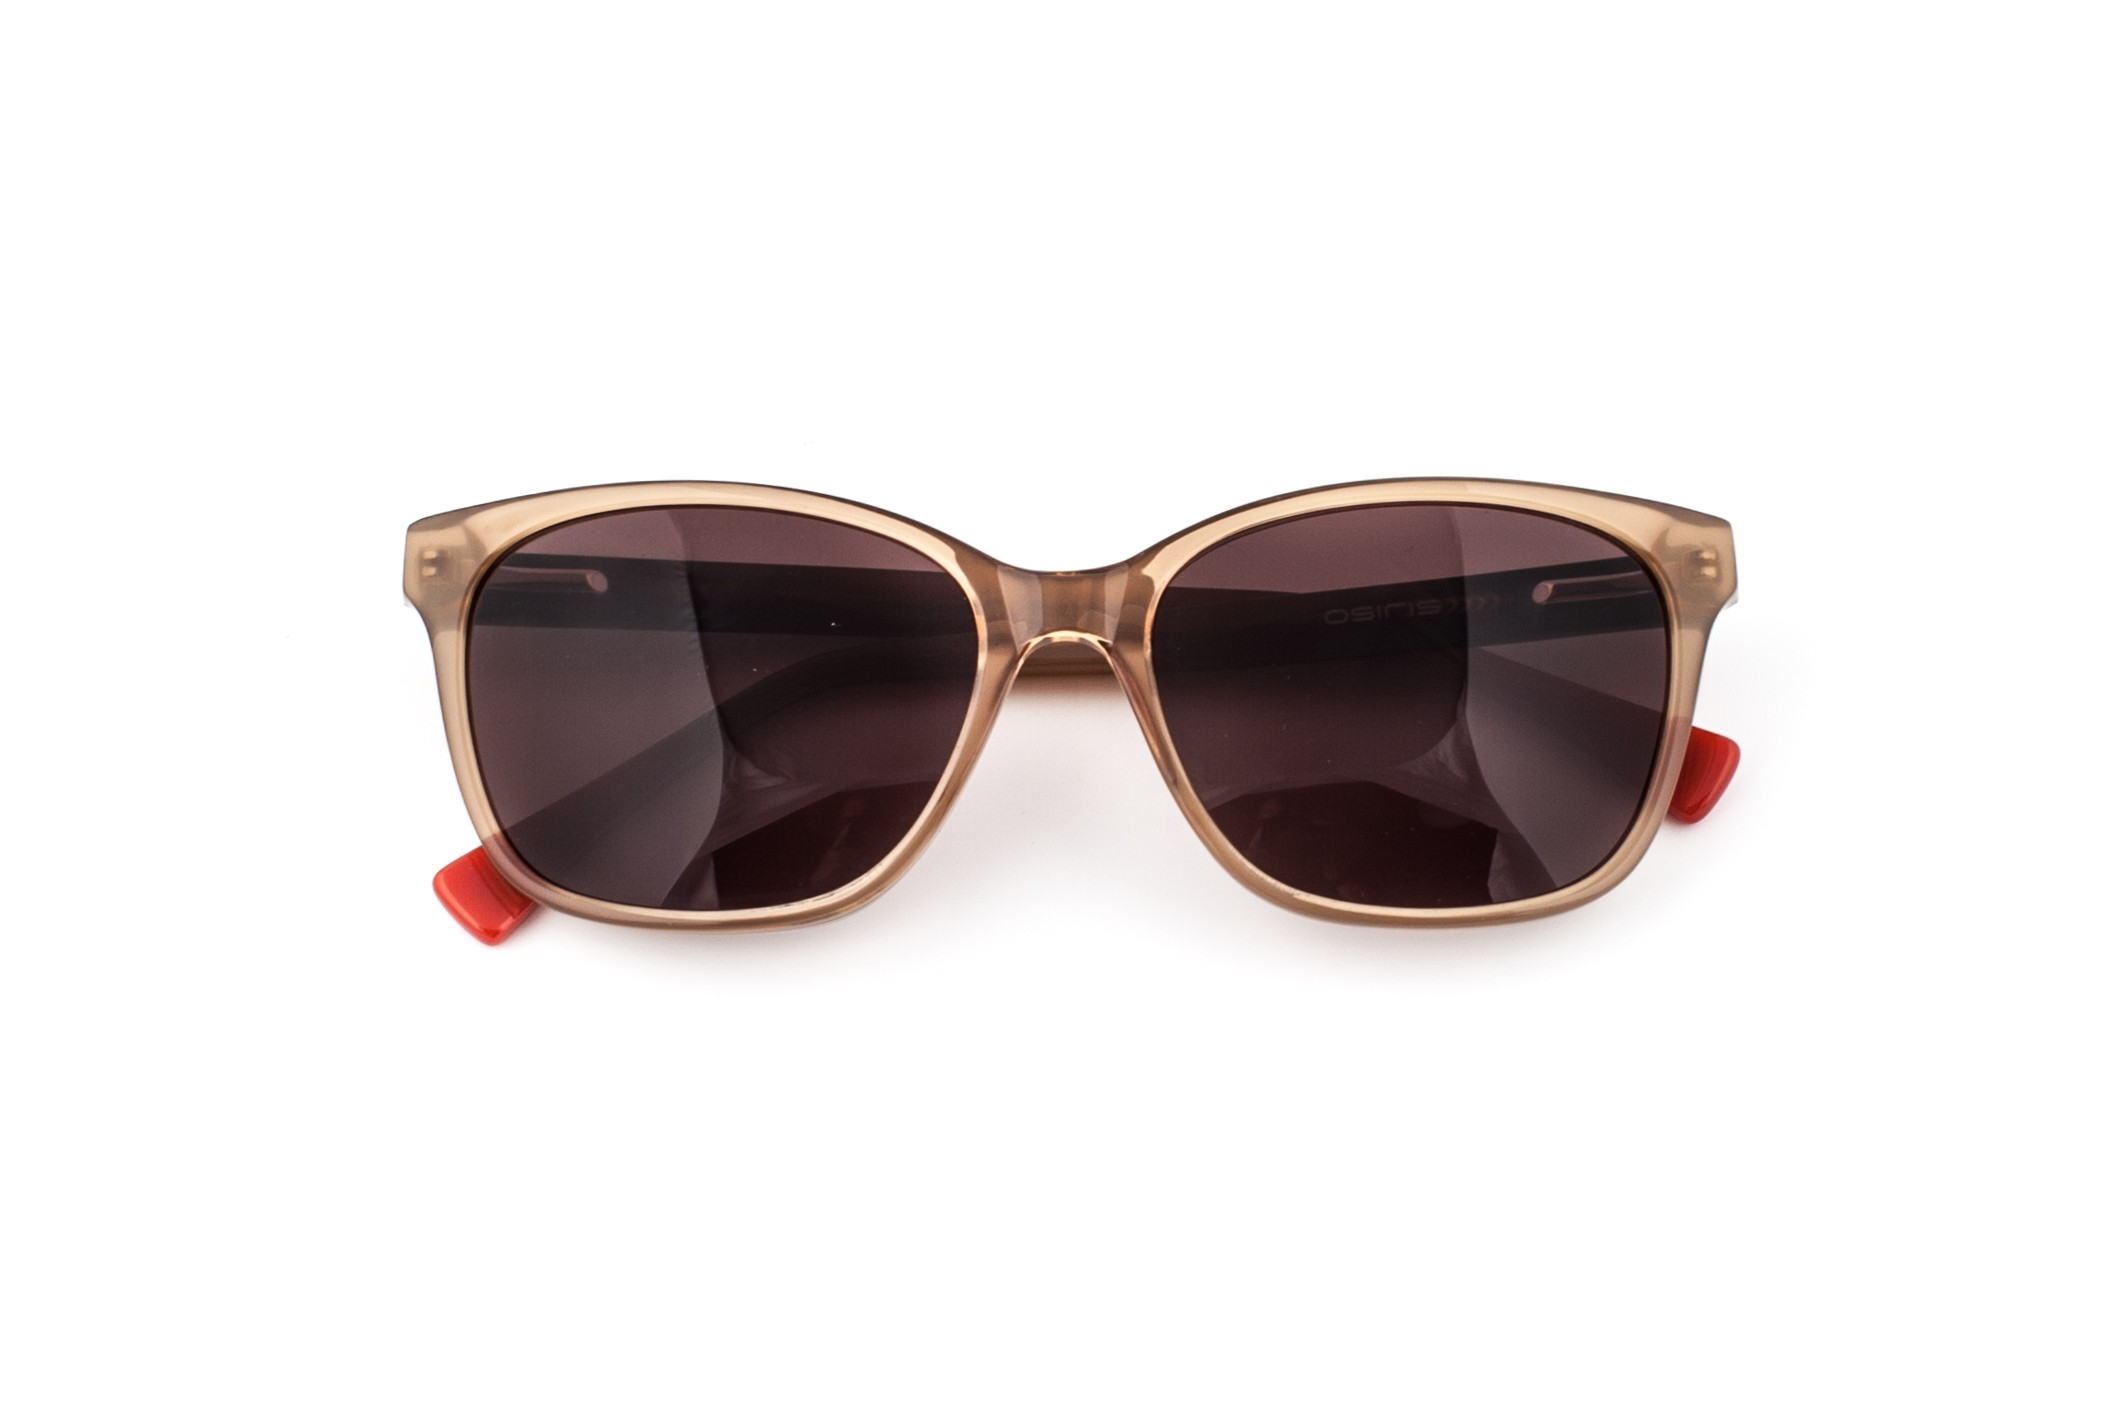 a8928347f59 Sunglasses Archives - Gurlinterrupted